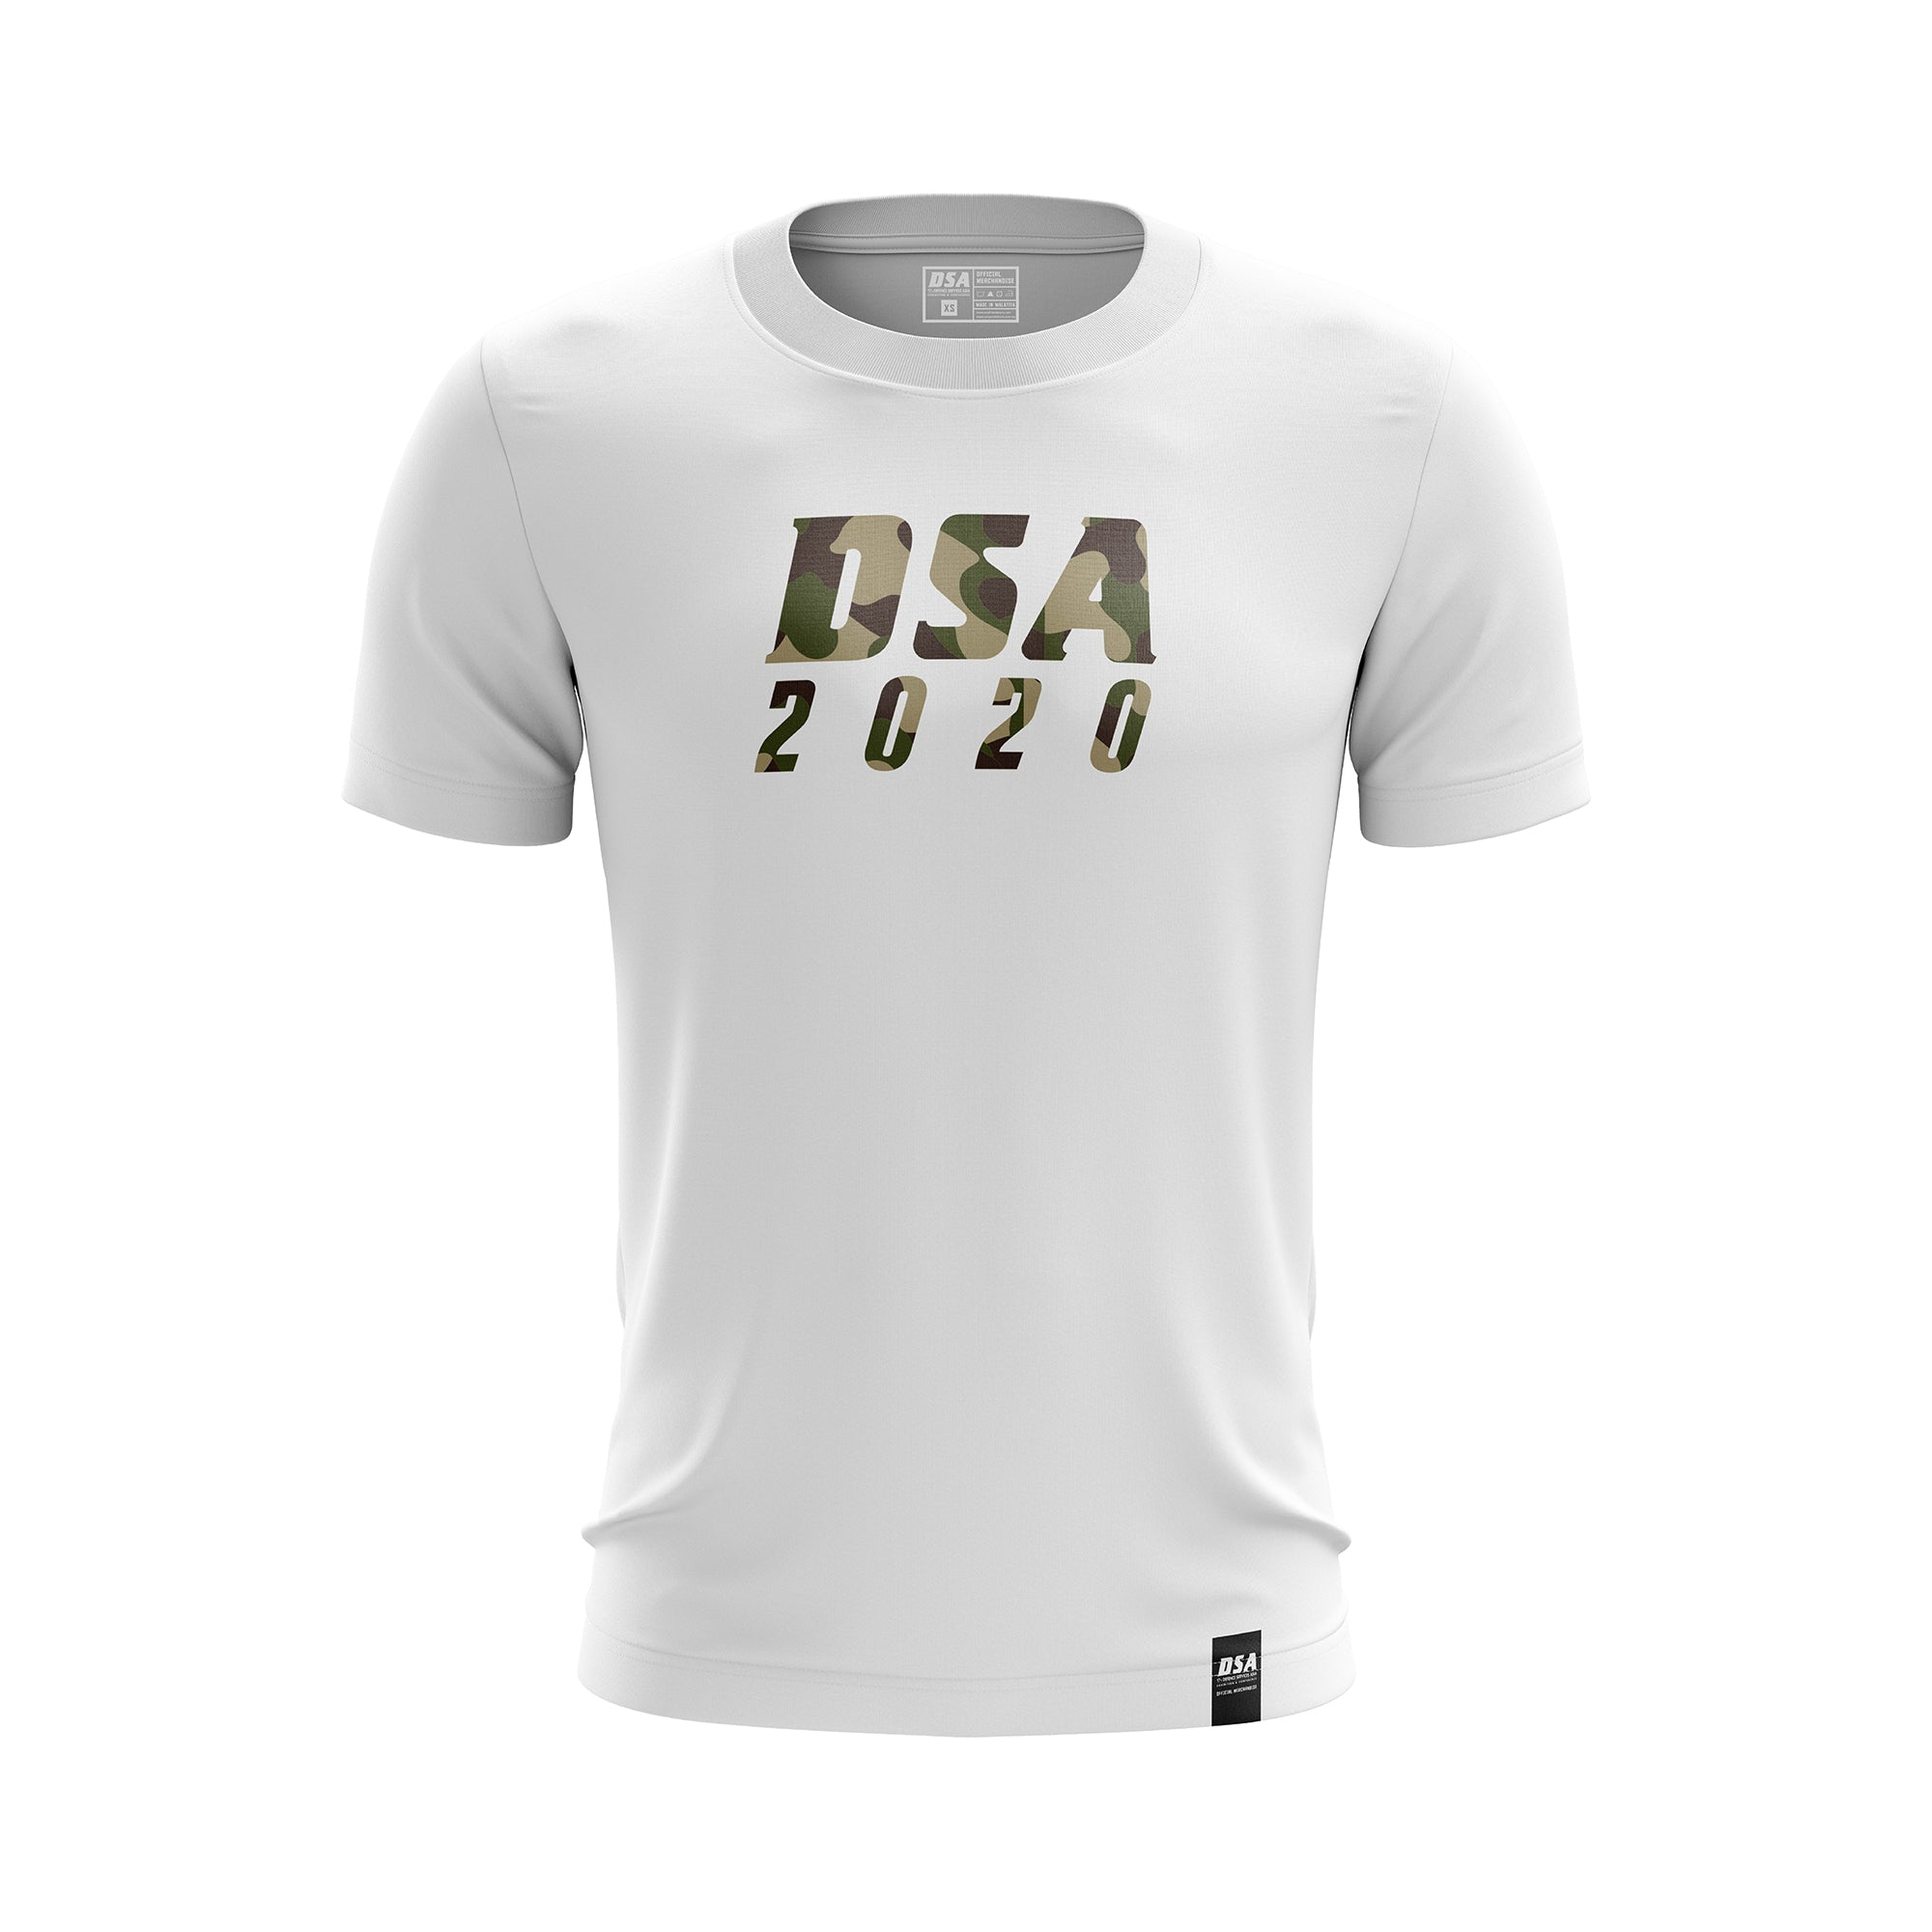 DSA Camouflage Effect Comfort Round Neck T-Shirt White - DSA 2020 Official Merchandise